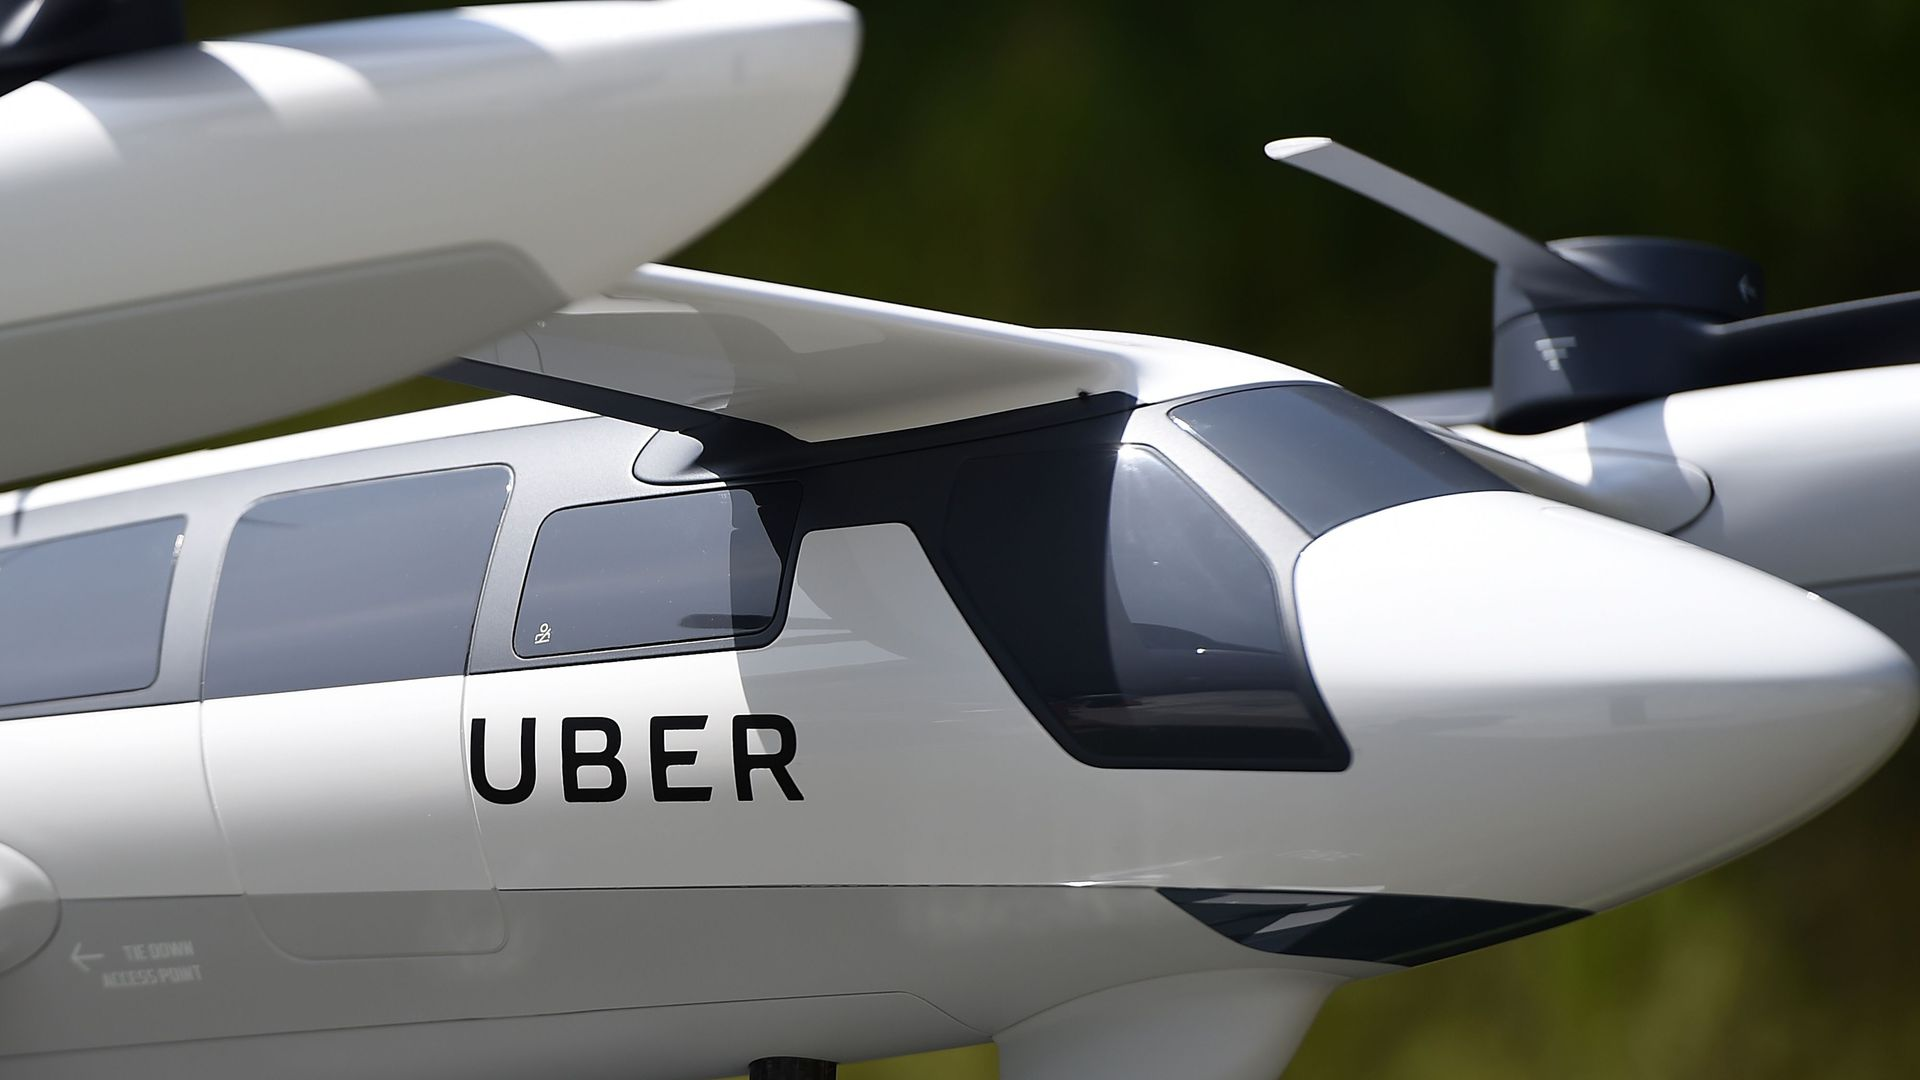 Uber is still eyeing flying cars, but don't expect them to replace urban taxis